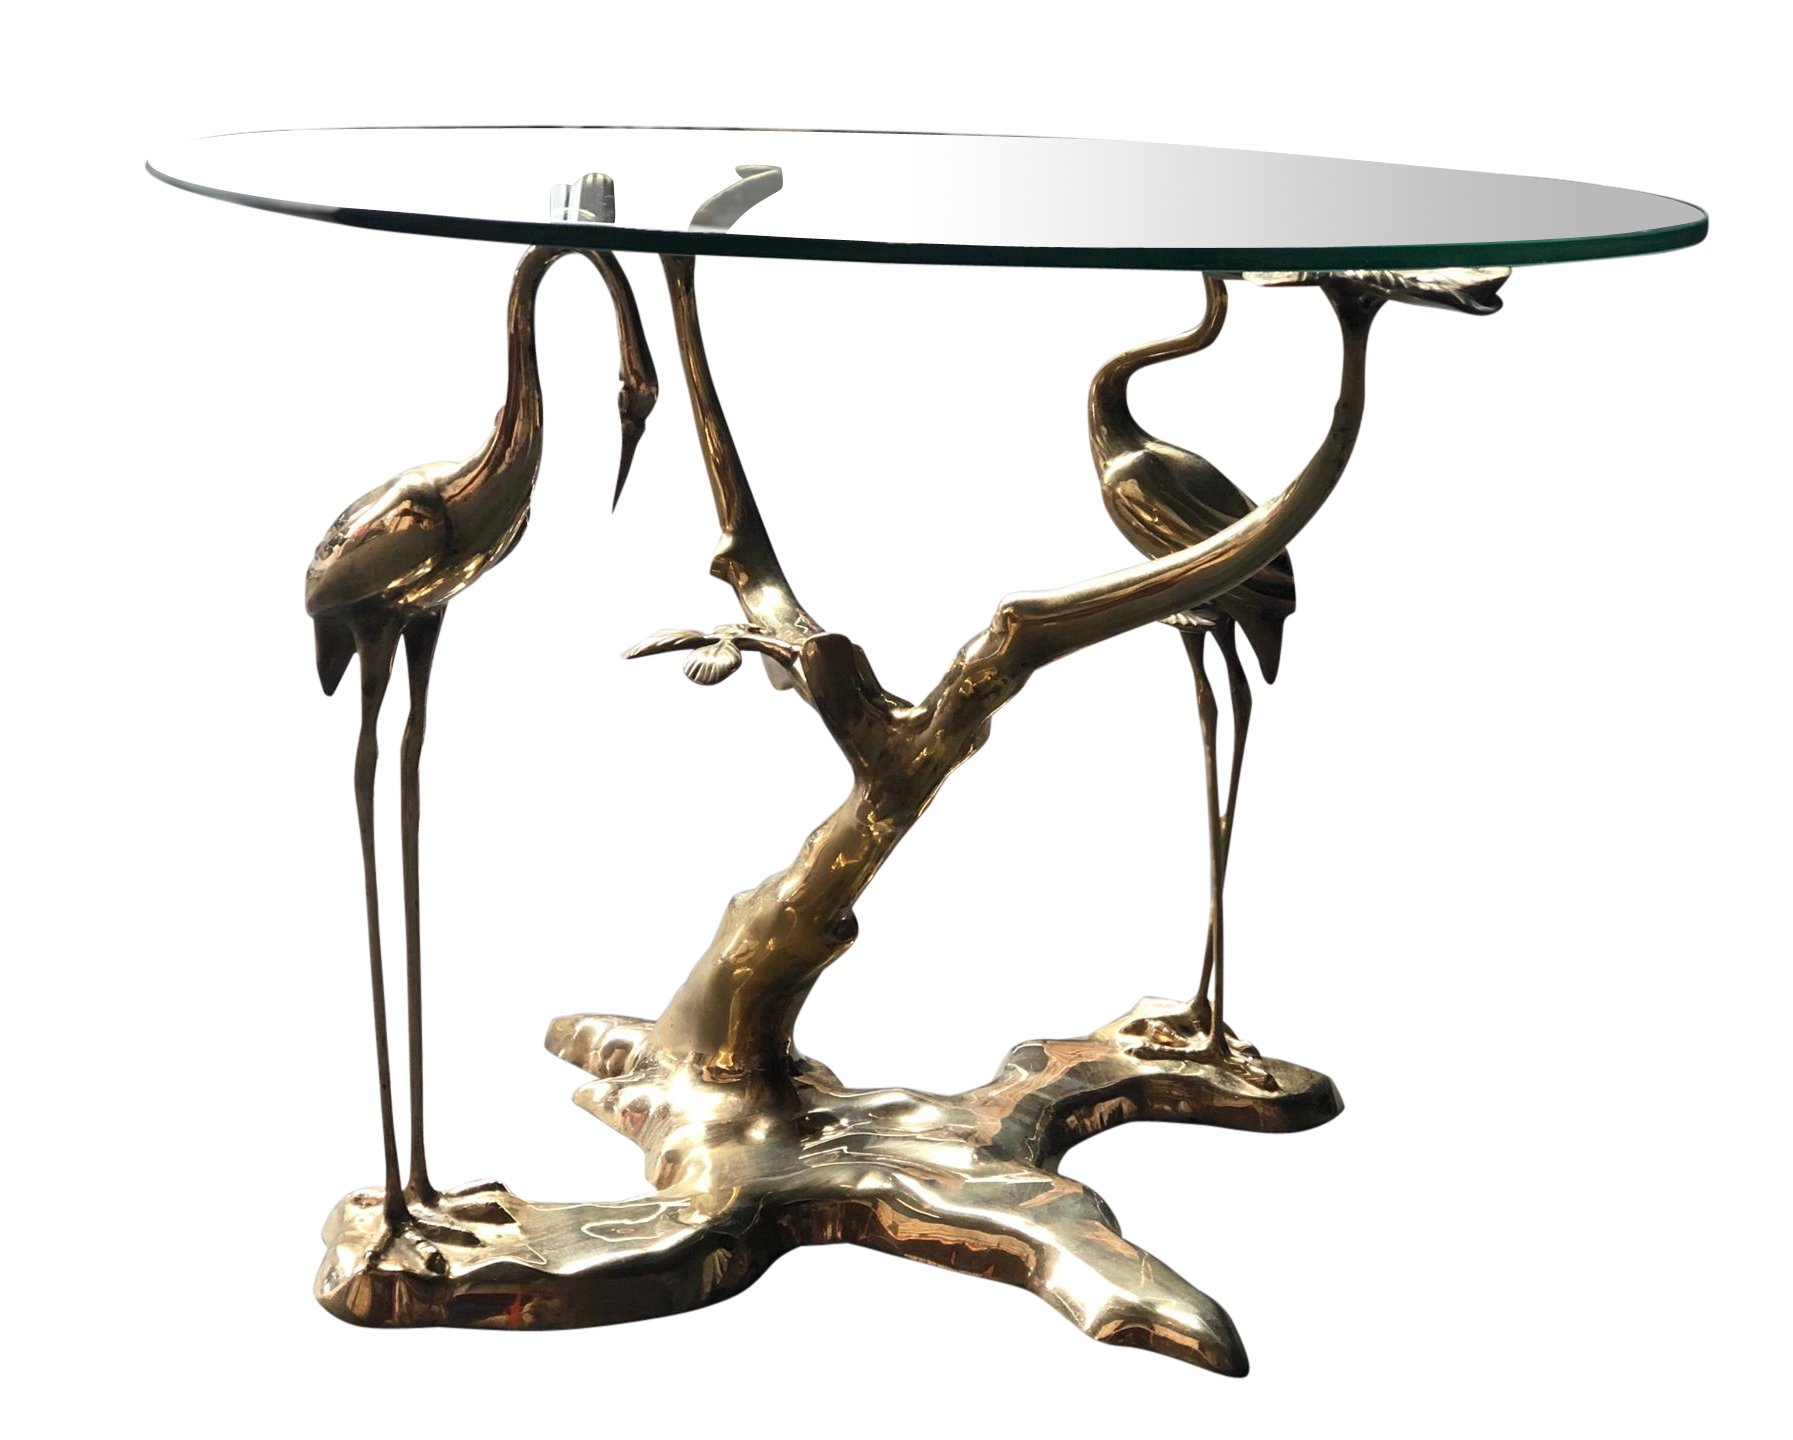 Sensational Bronze Crane Bird Coffee Table By Willy Daro 1970S Uwap Interior Chair Design Uwaporg